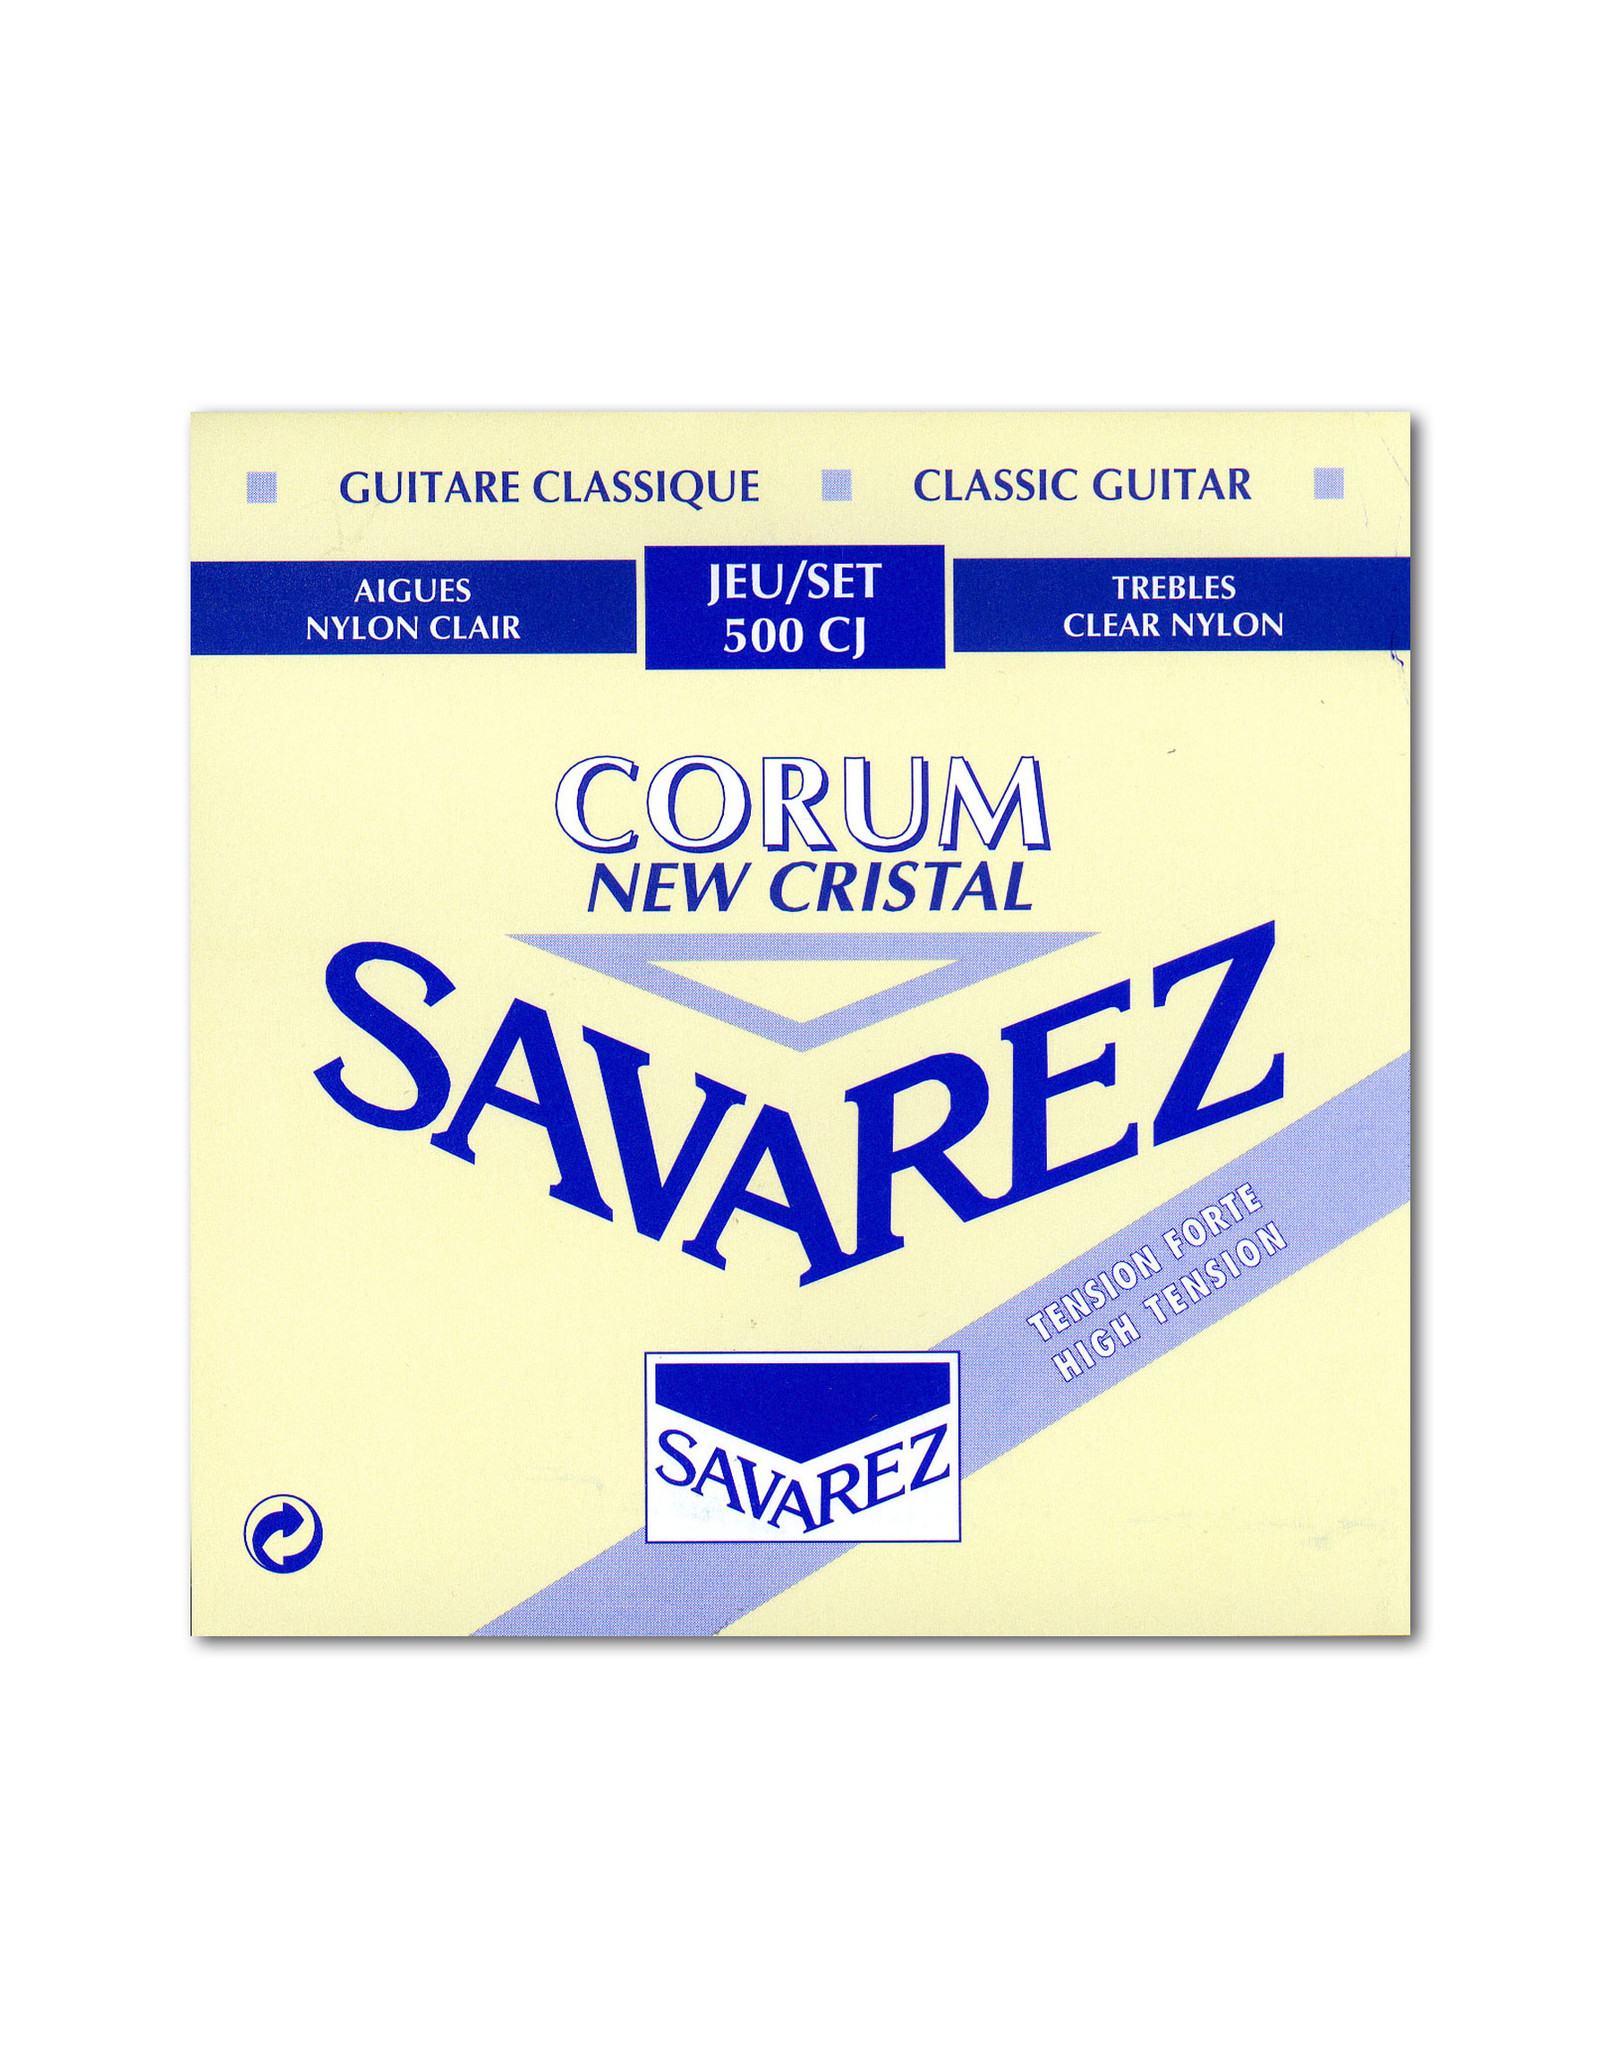 Savarez Savarez High Tension Cristal Trebles Corum Basses